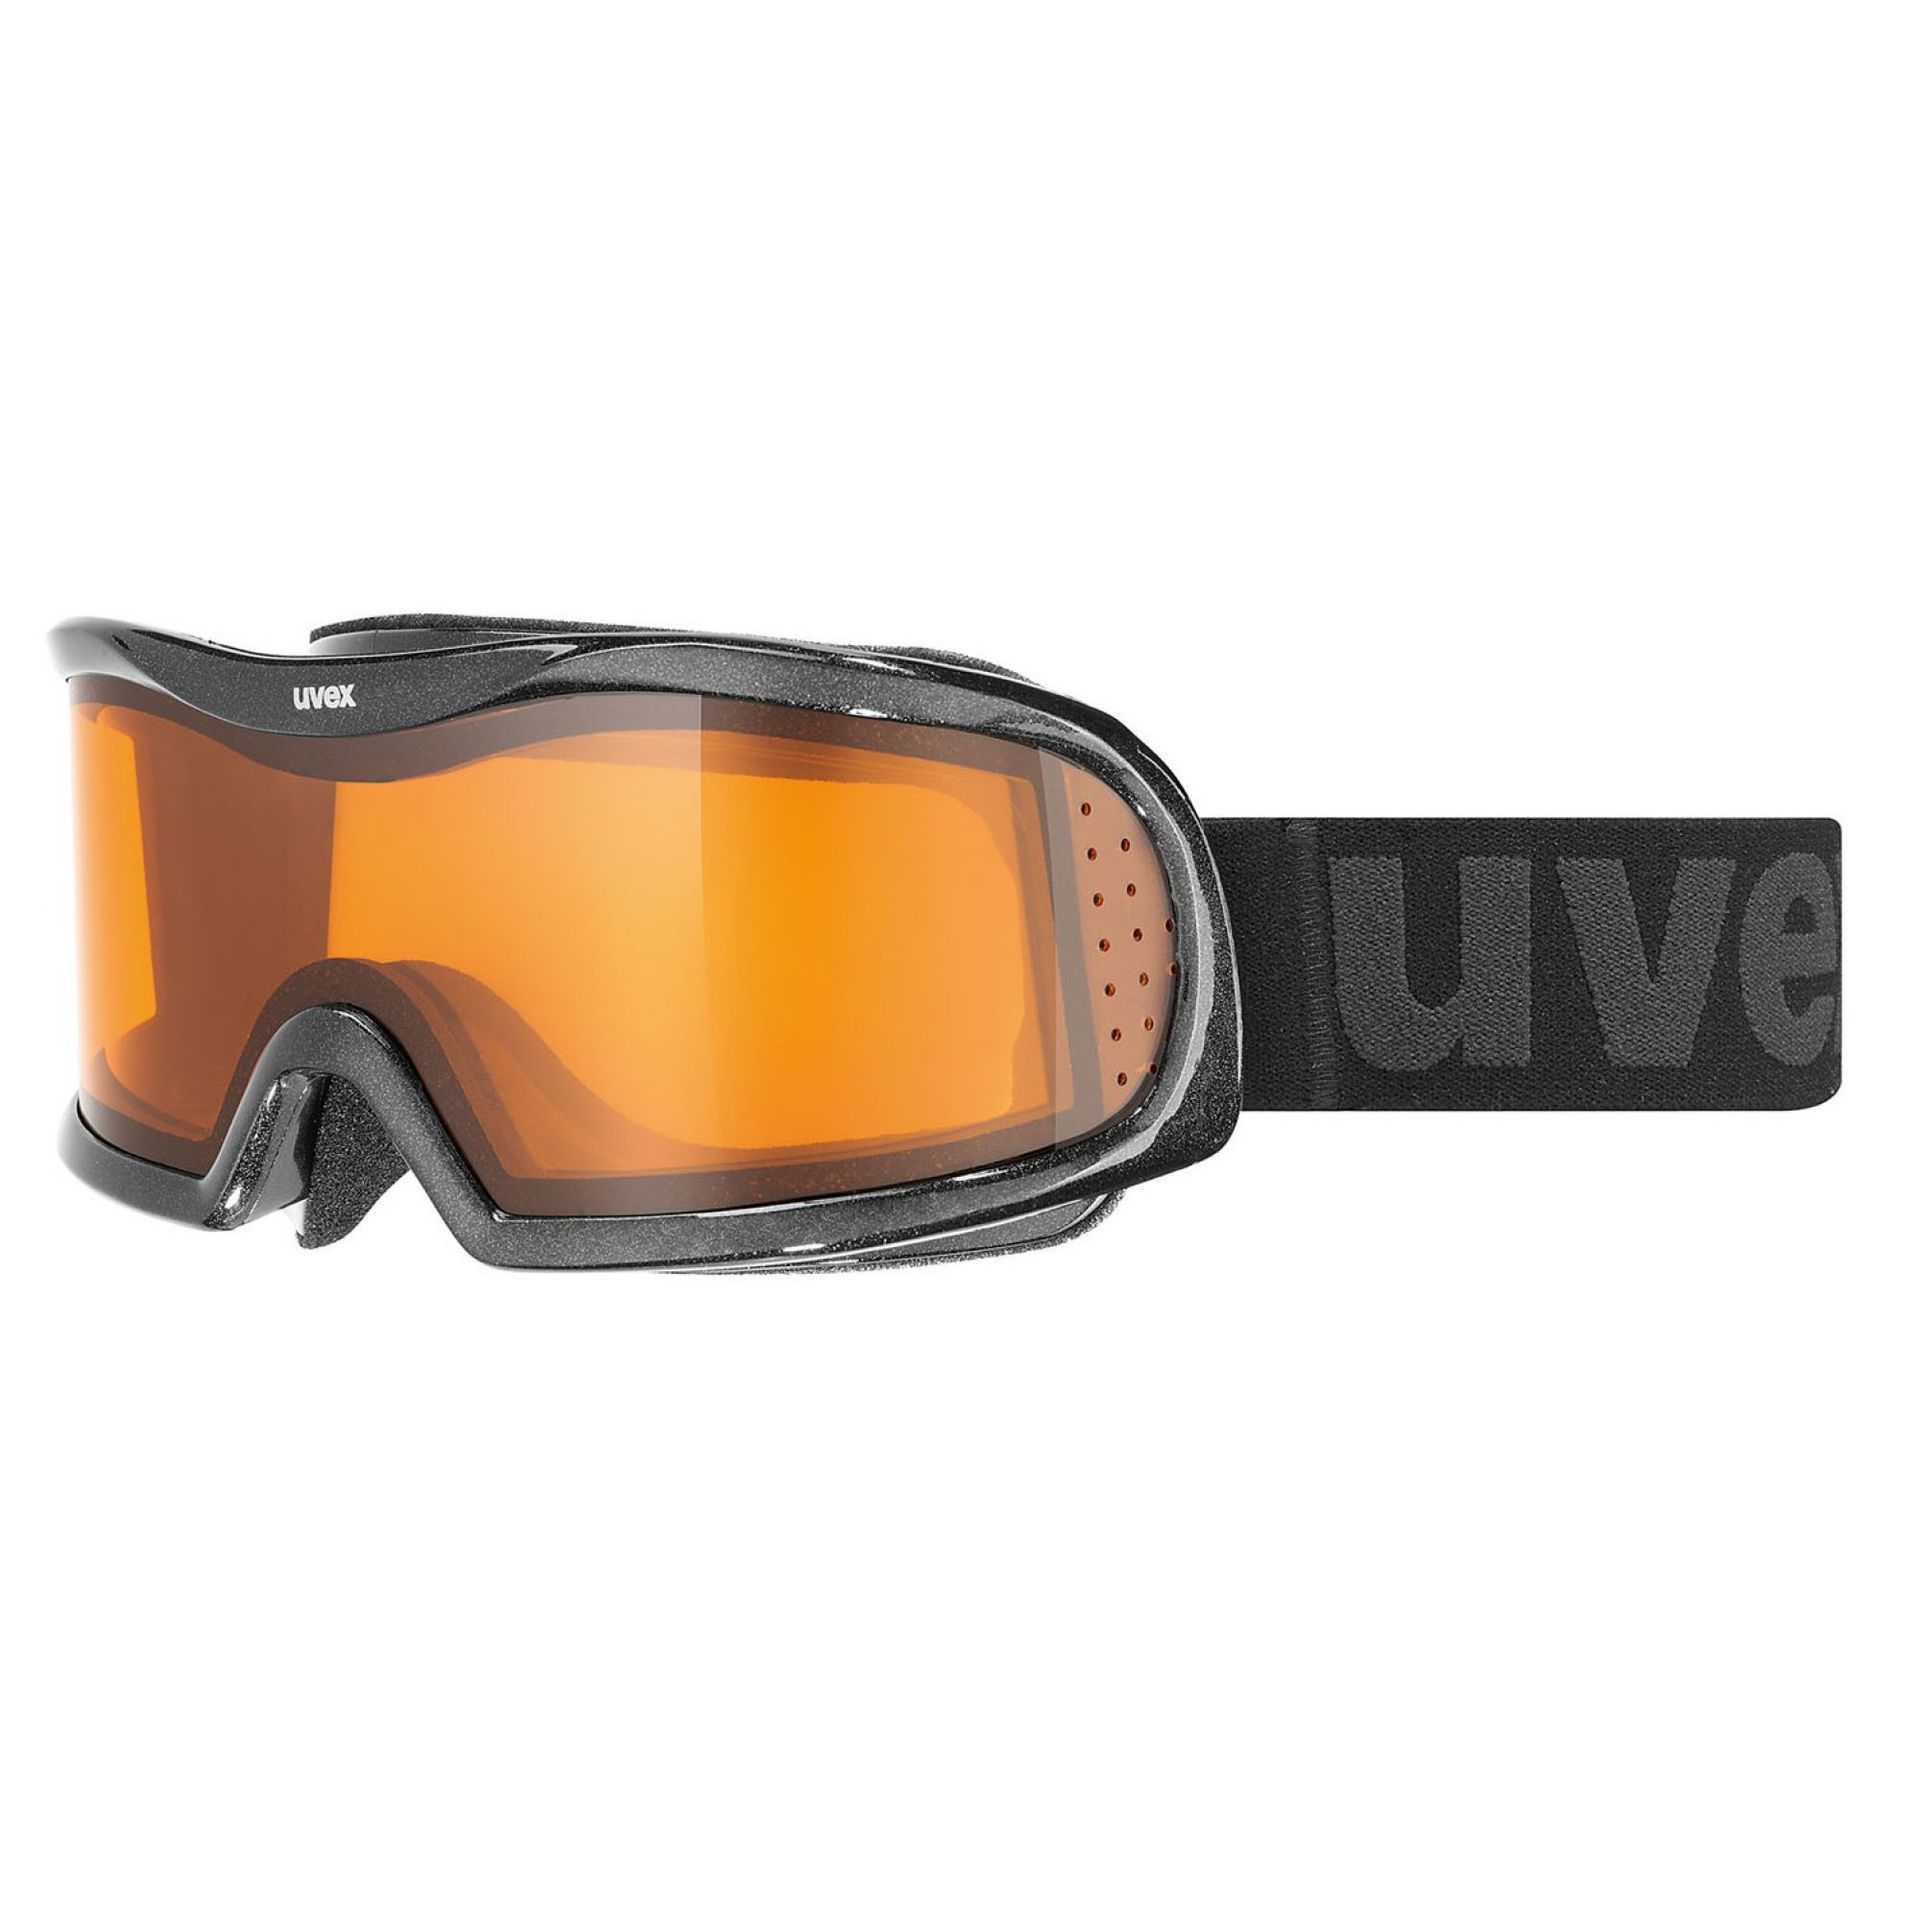 GOGLE UVEX VISION OPTIC L  BLACK MET|LASERGOLD LITE|CLEAR S1